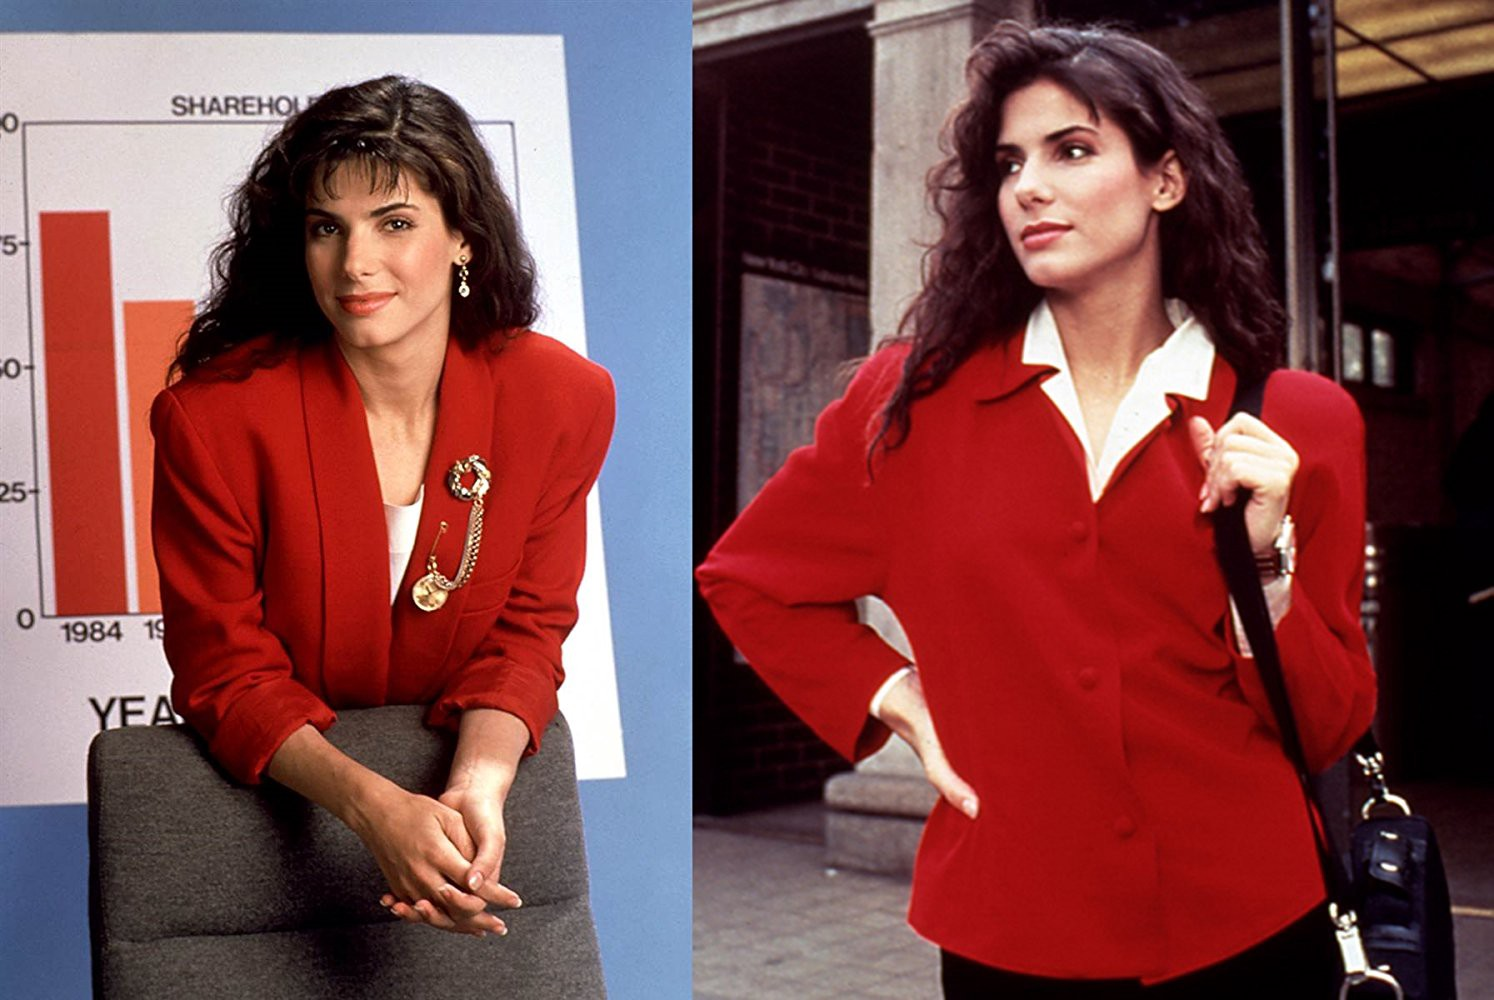 The Sandra Bullock Files #6: Working Girl (1990) - Brian Rowe - Medium